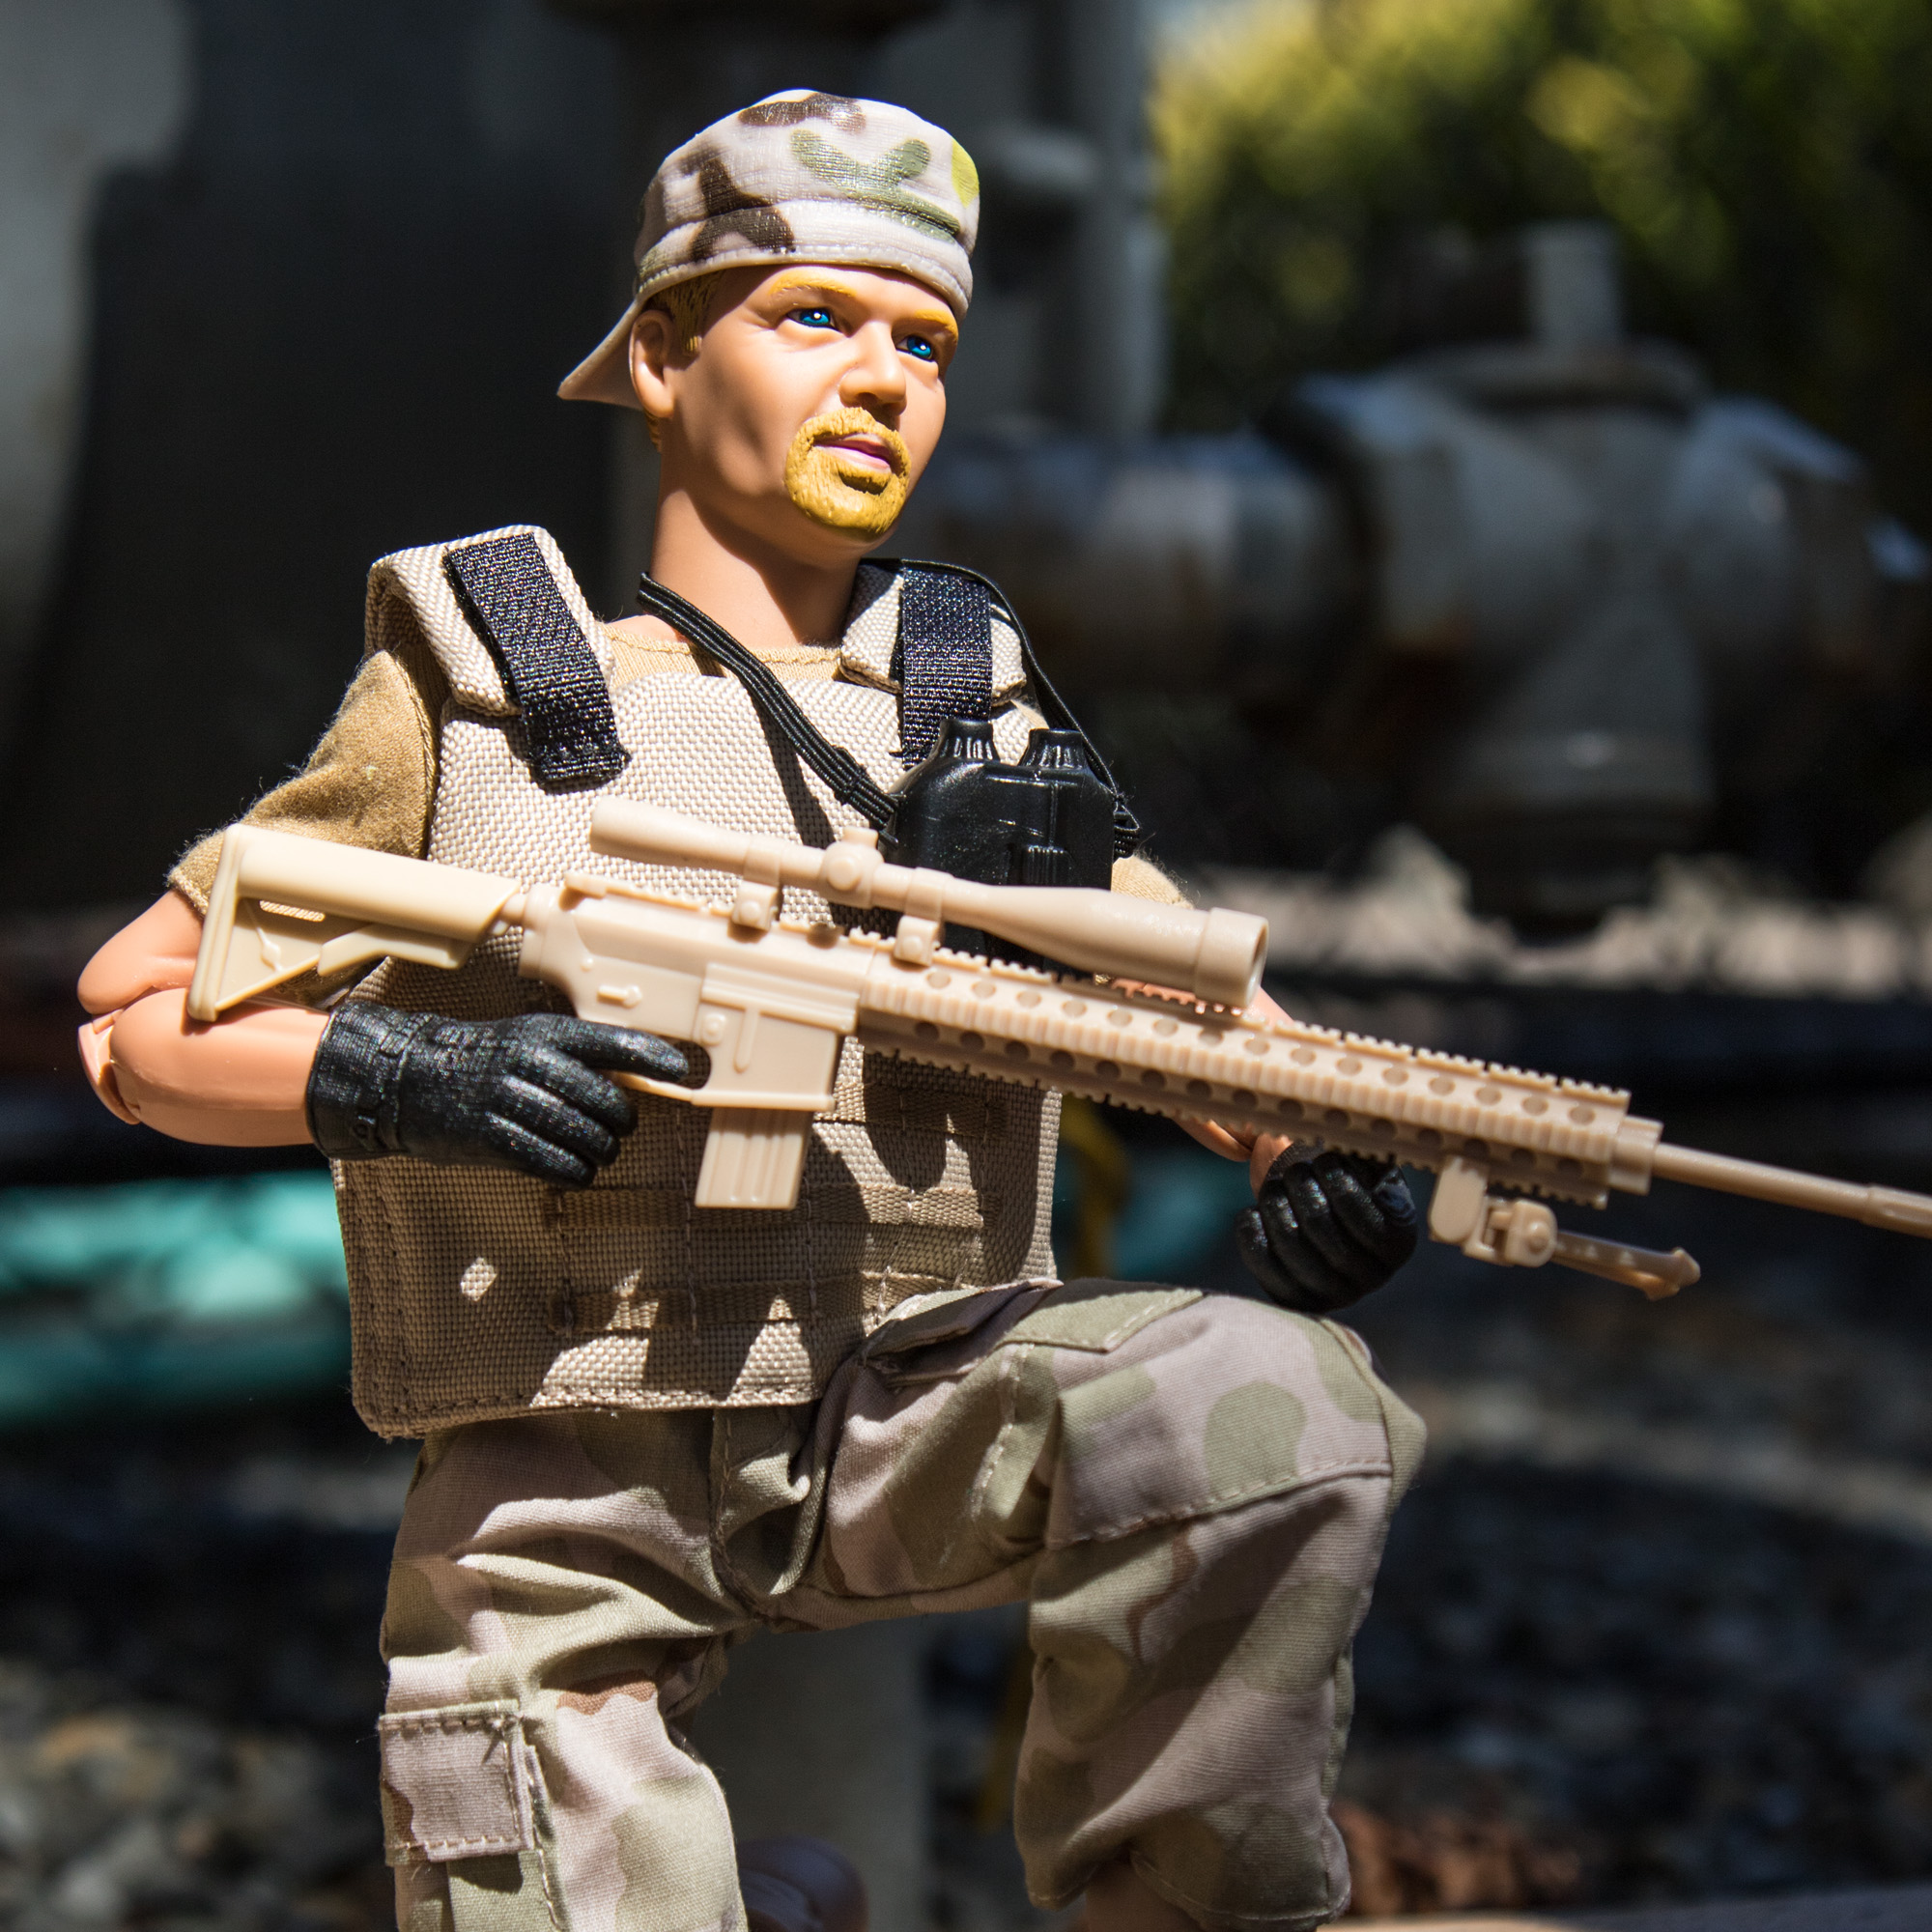 Army Toys Action Figure by World Peacekeepers Collectible 12 Inch Military Action Figure... by World Peacekeepers